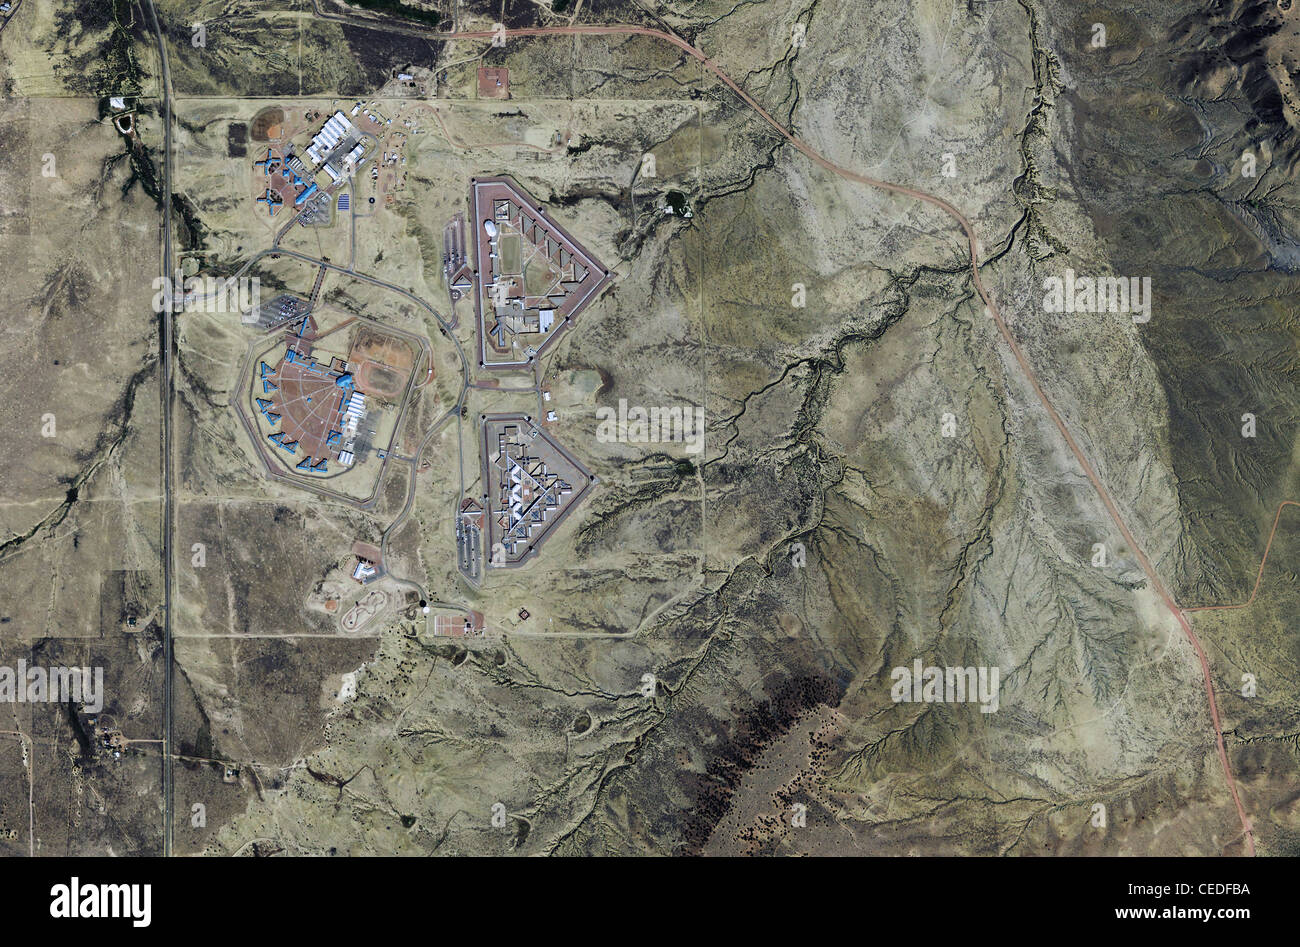 aerial photo map United States Penitentiary, Administrative Maximum Facility federal supermax prison facility Florence - Stock Image